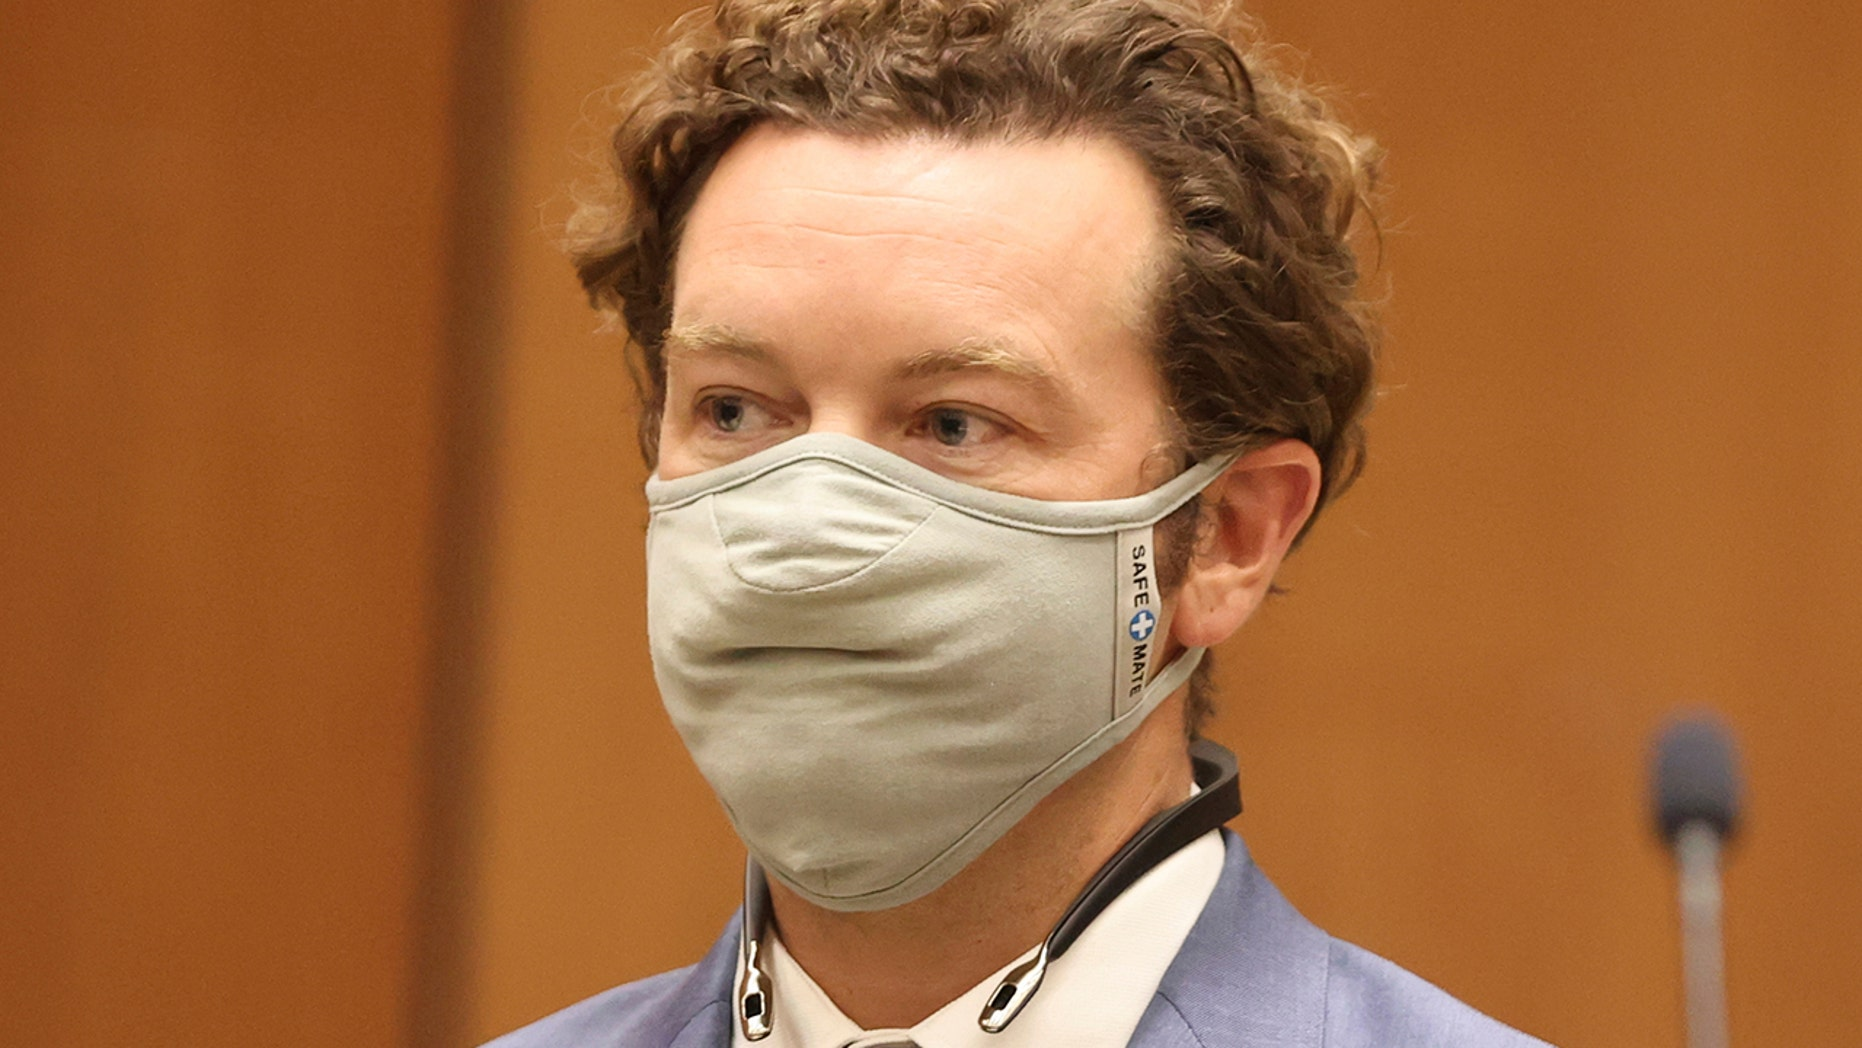 Judge in Danny Masterson's rape case to hear evidence from prosecutors